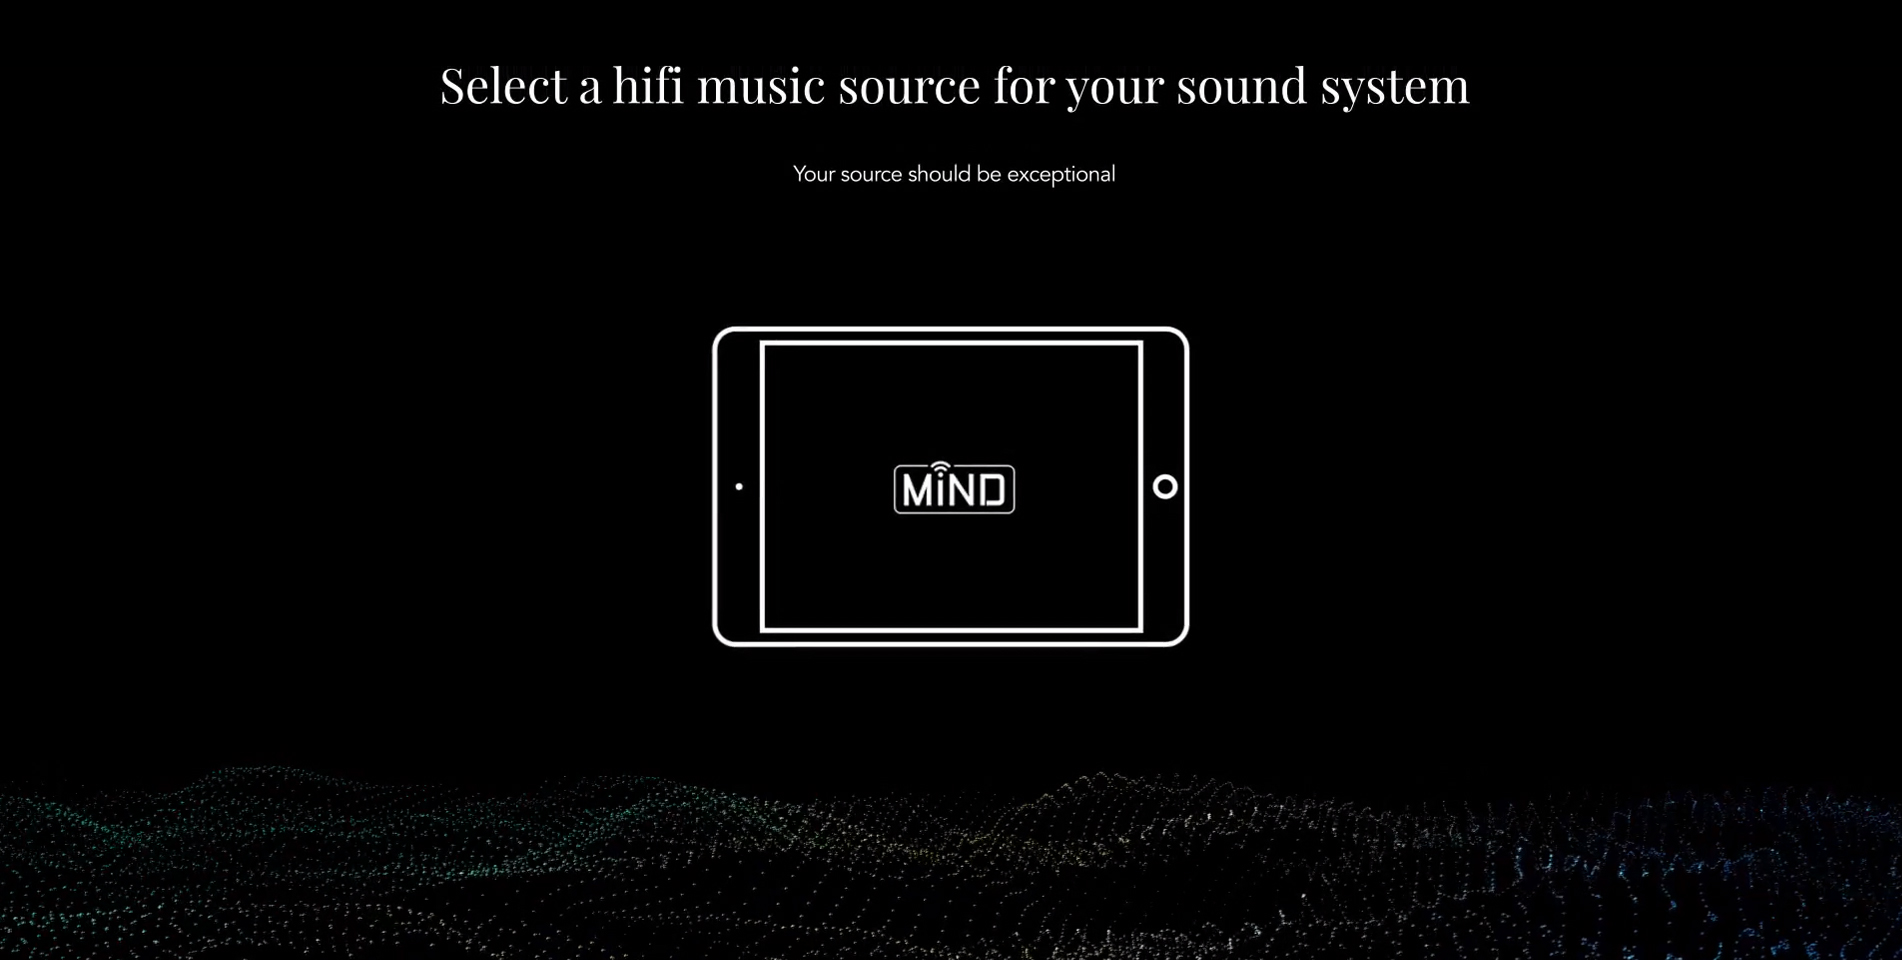 Spirit and emotion of music through products